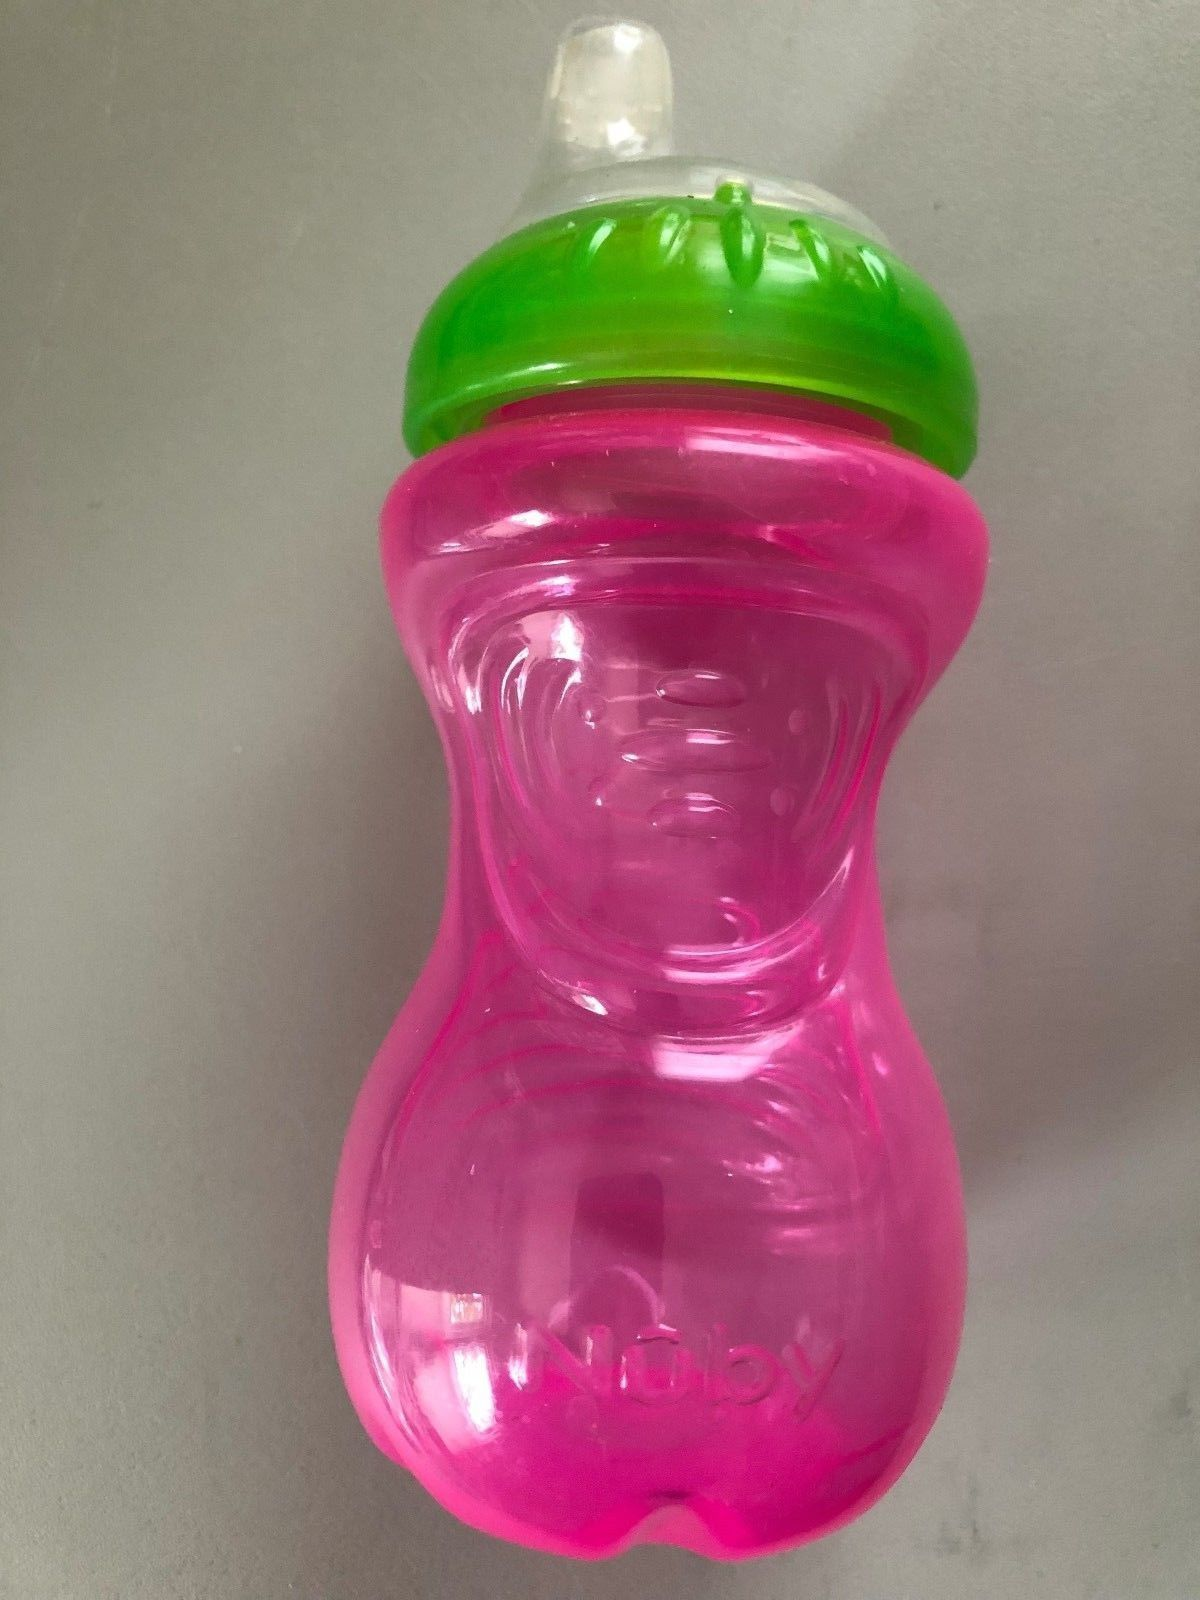 Nuby No-Spill Sipper the Gripper Toddler Cup 10-Ounce Pink with Green/Clear Top - $4.46